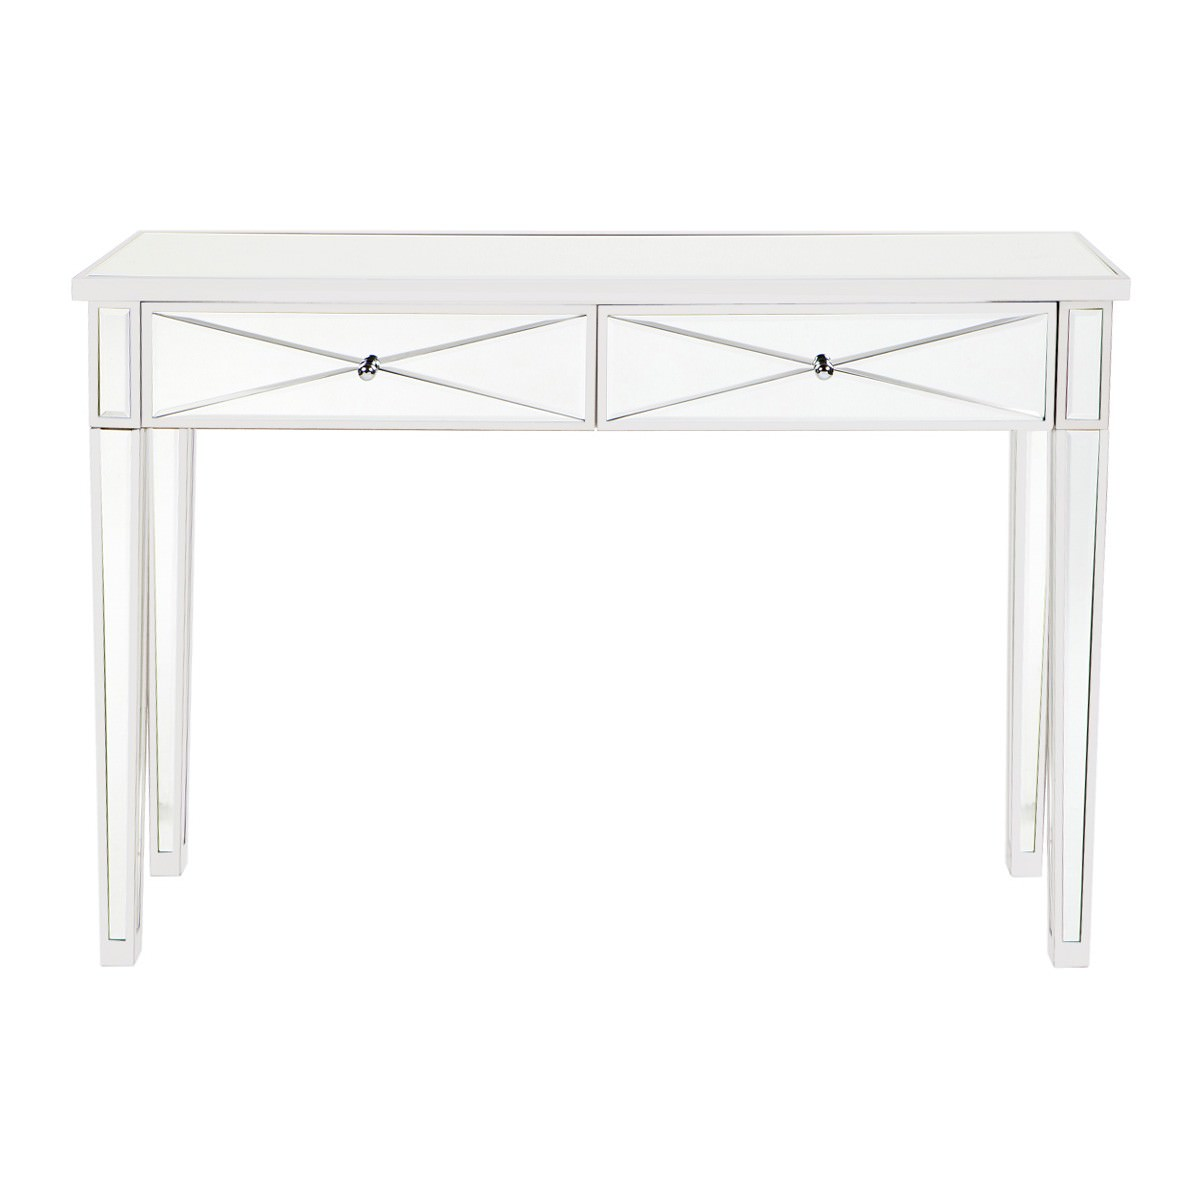 Apolo Mirrored Glass 2 Drawer Console Table, 121cm, White